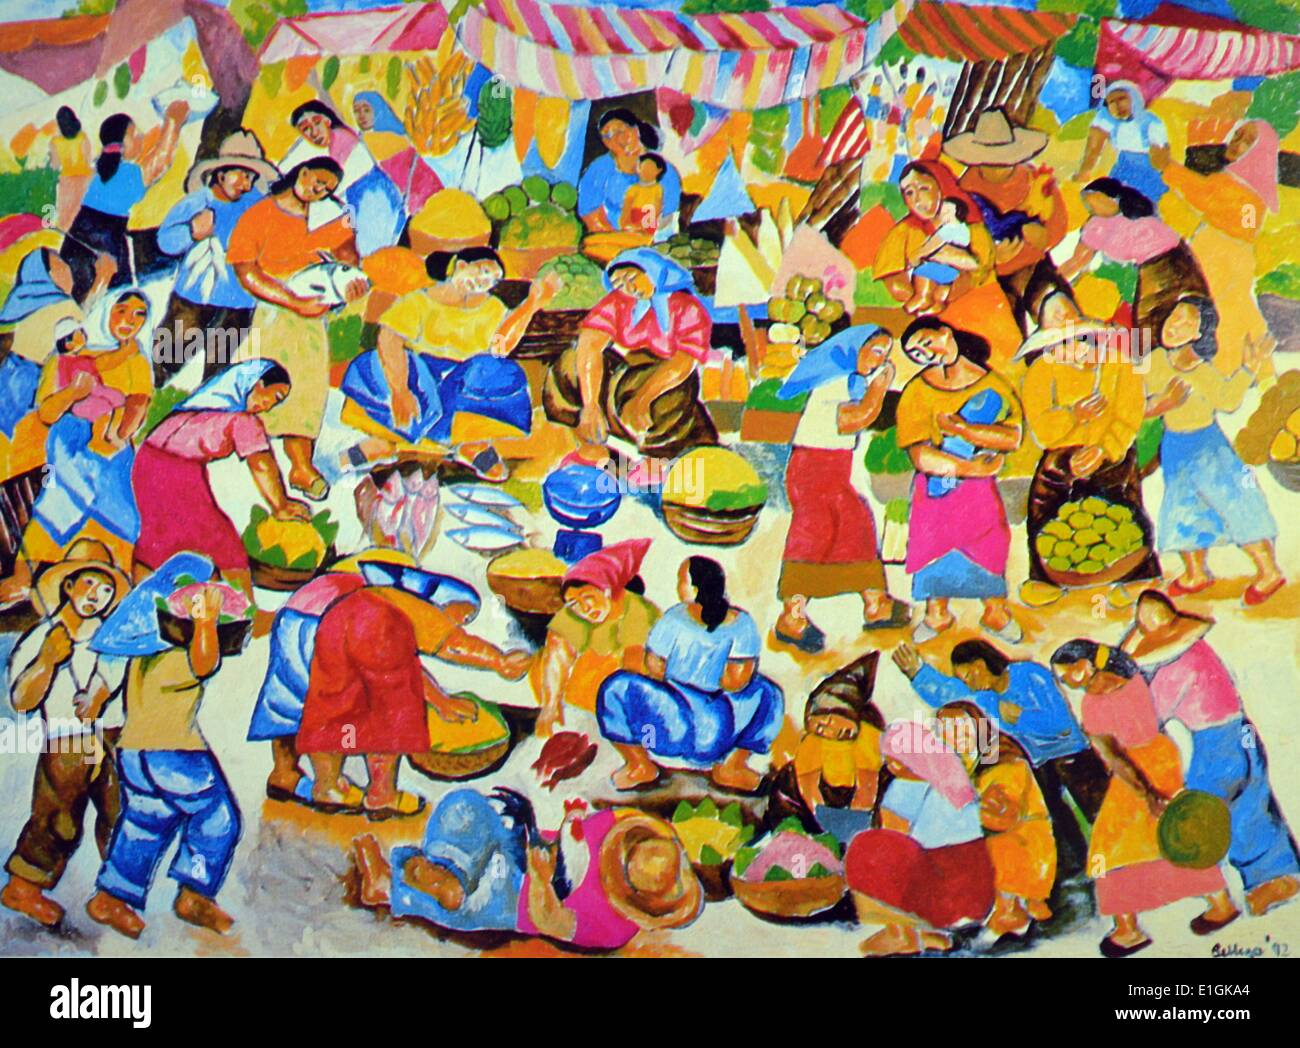 Norma Belleza, 'Little People' 1992, oil on canvas - Stock Image